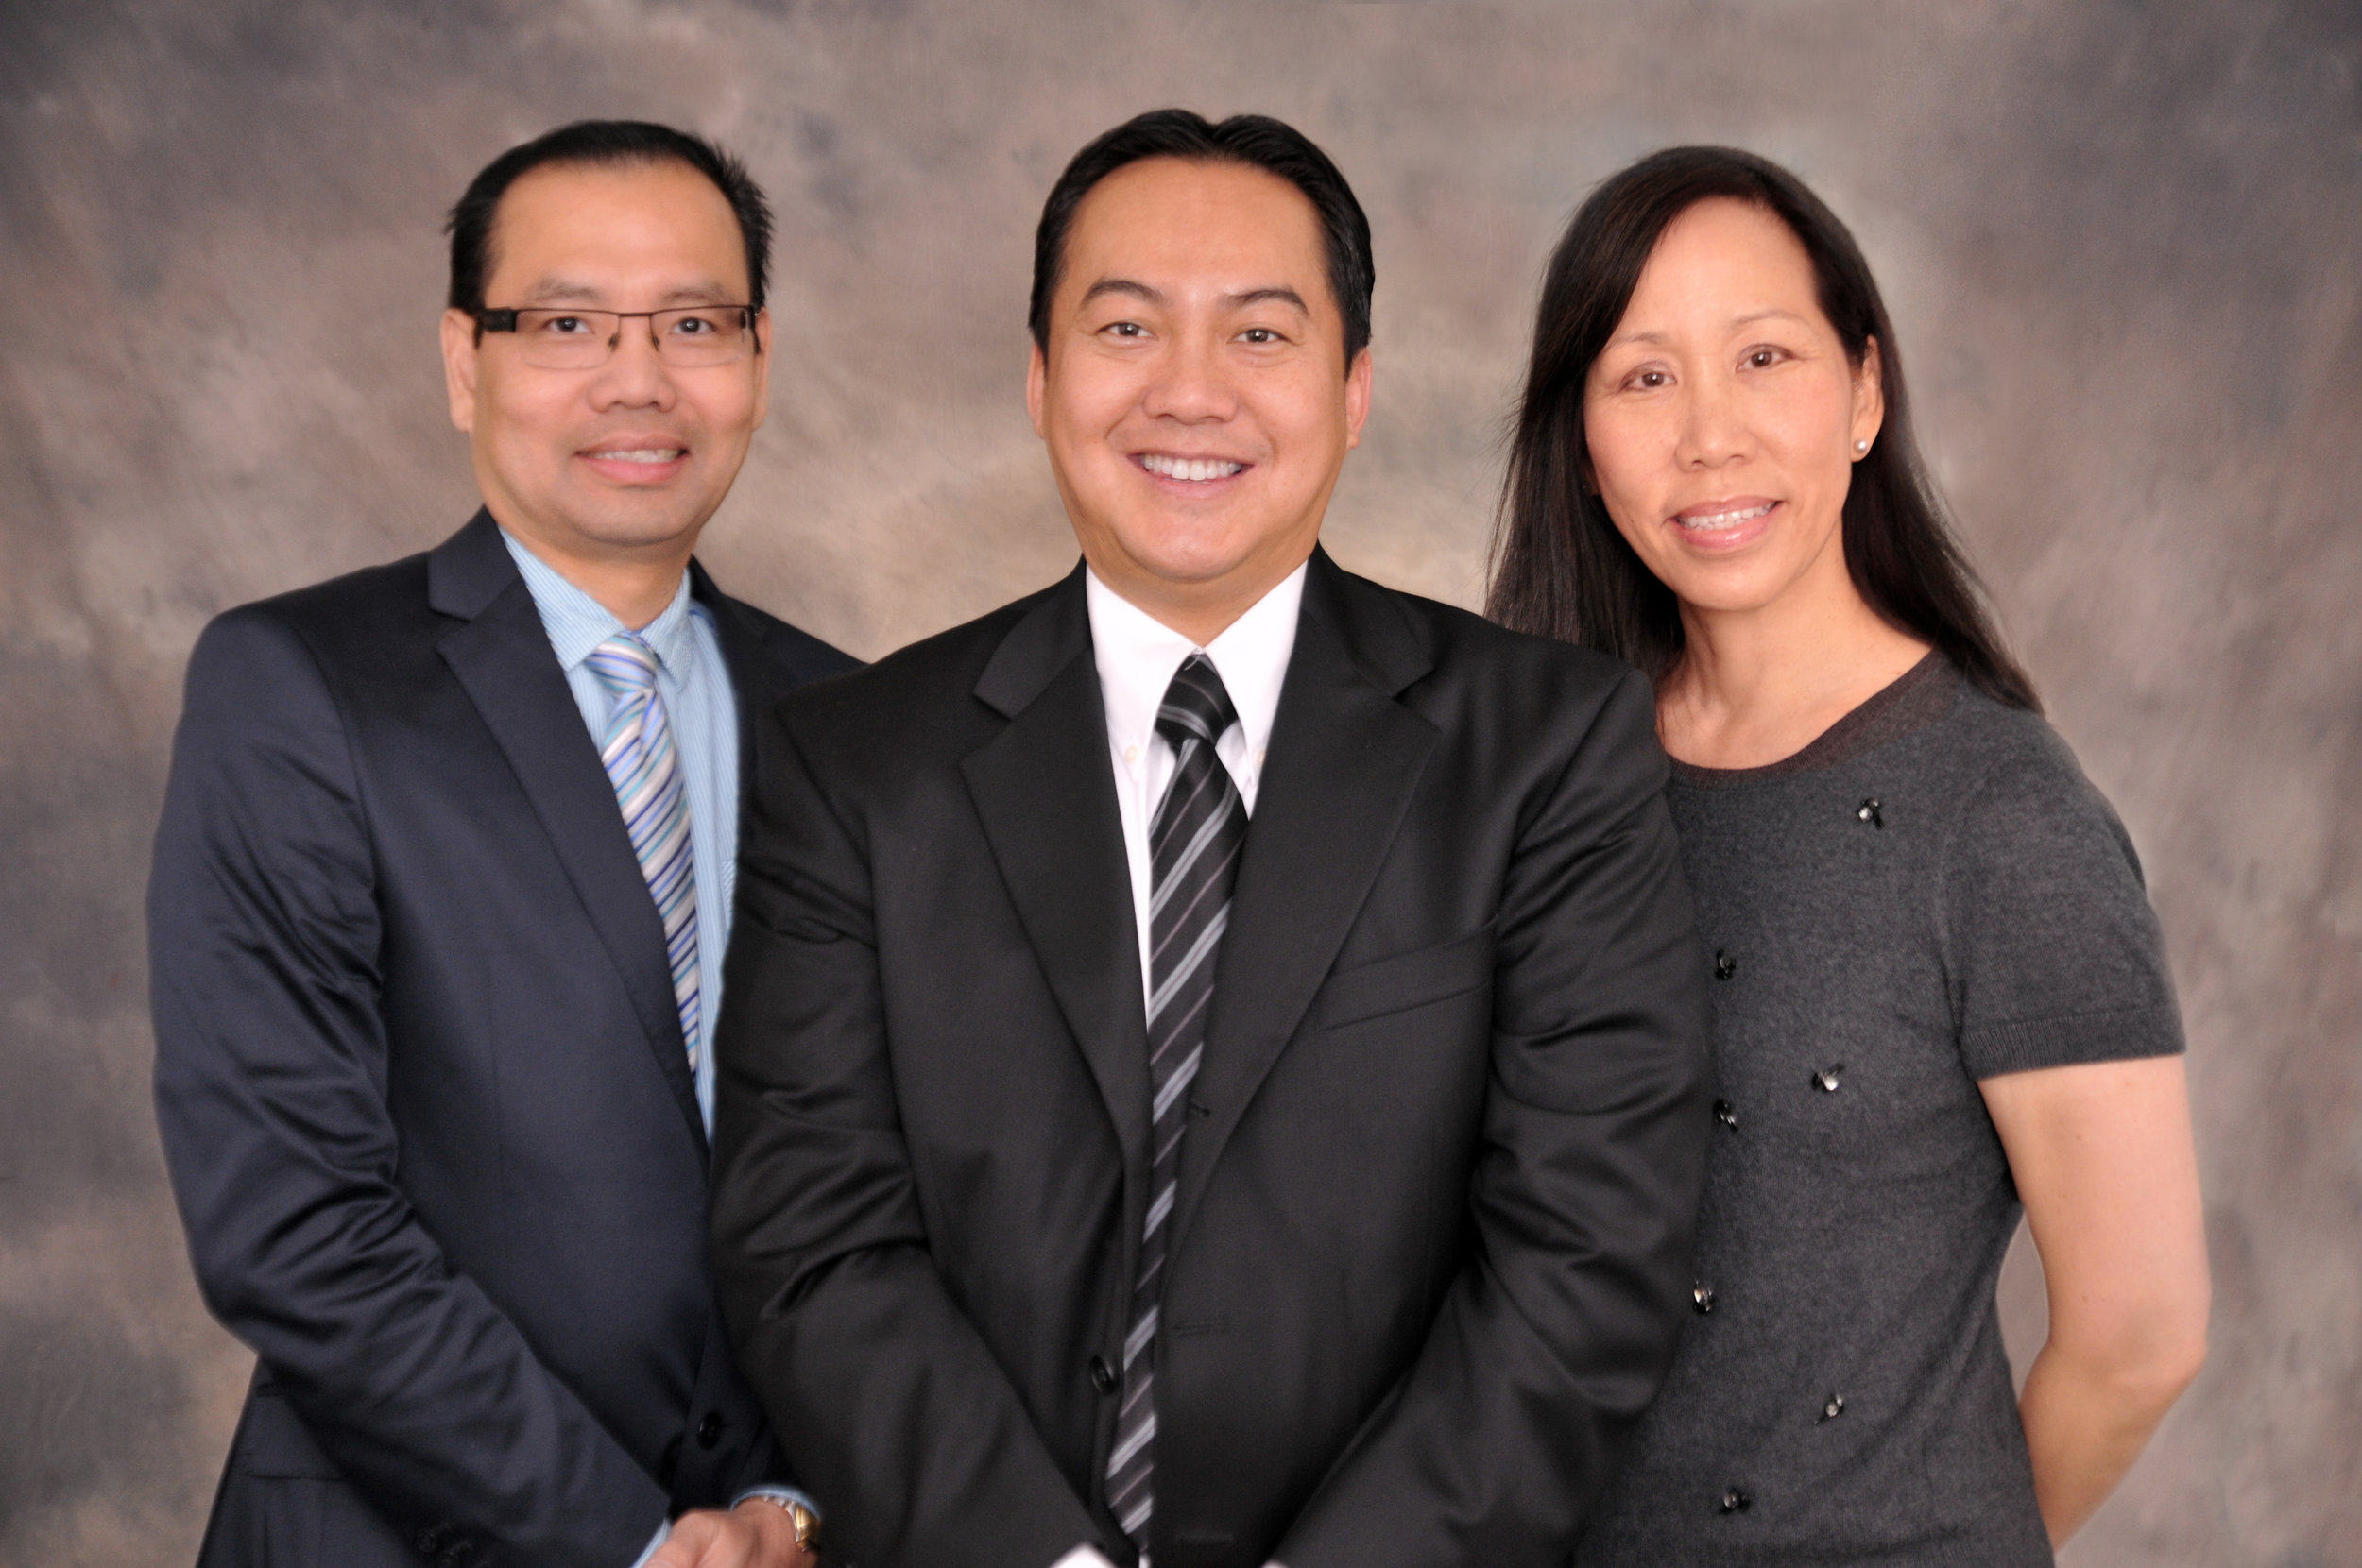 OUR PROVIDERS (PETER LE, PA, ROGER TRAN,MD, PRISCILLA CHOW, NP)